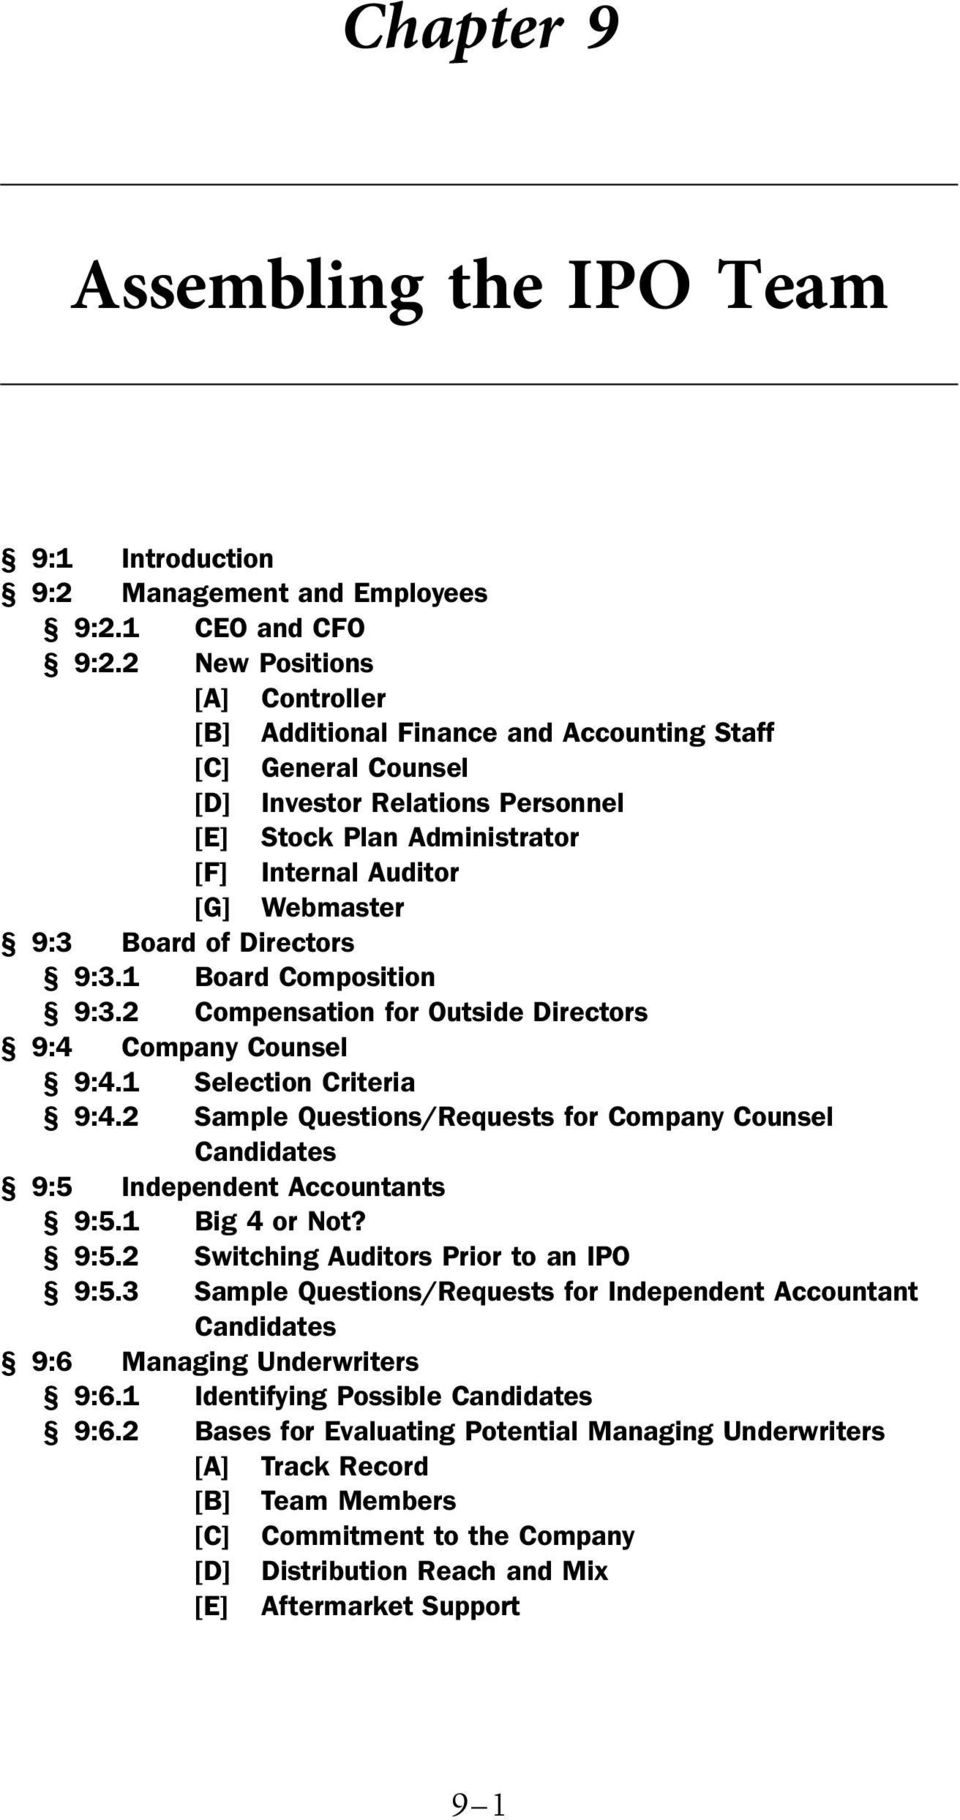 Diectos 9:3.1 Boad Composition 9:3.2 Compensation fo Outside Diectos 9:4 Company Counsel 9:4.1 Selection Citeia 9:4.